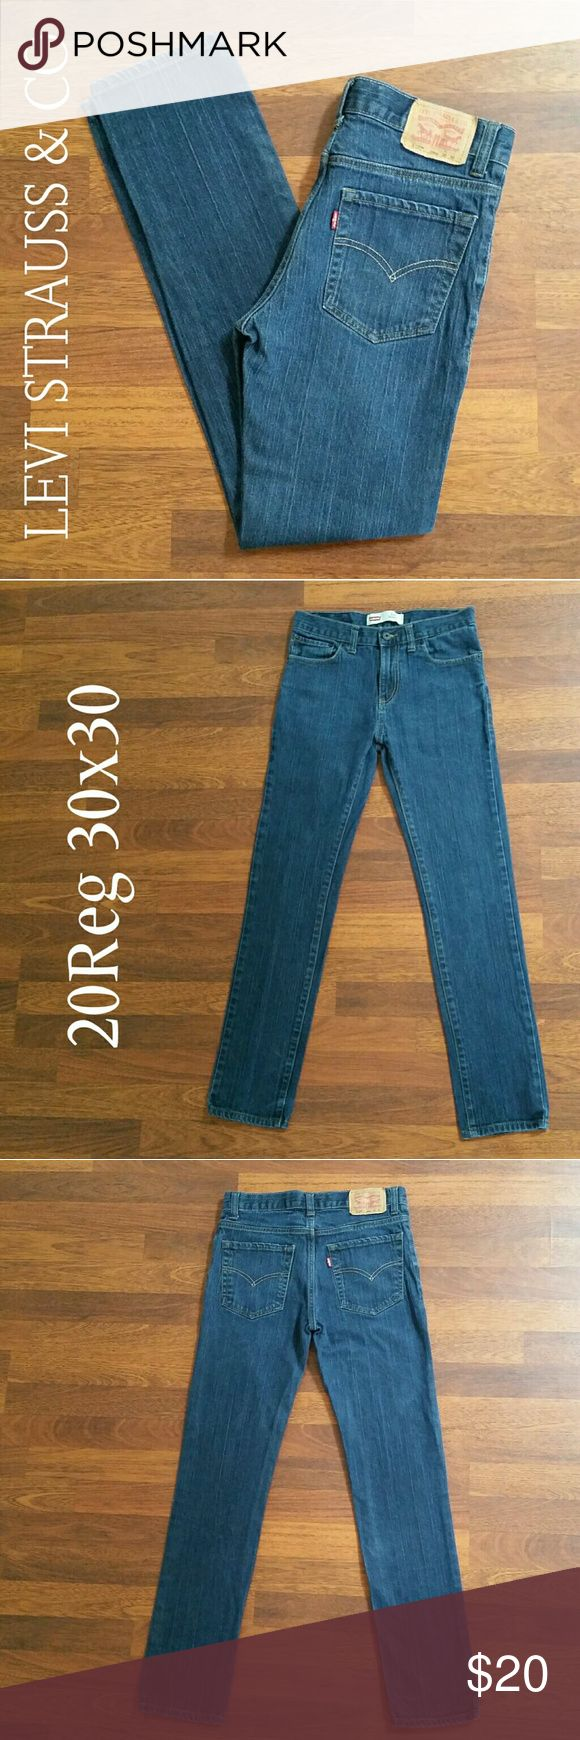 Levi's 510 Skinny 30x30 20Reg BOYS Levi Strauss & CO 510 Skinny Jeans in great condition! Nice Medium wash. These are in very like-new. No wear at all to the bottom pant cuffs! This is a great find!  Size 20 Reg (Boys/Young Men) W30 x  L30 Levi's Bottoms Jeans